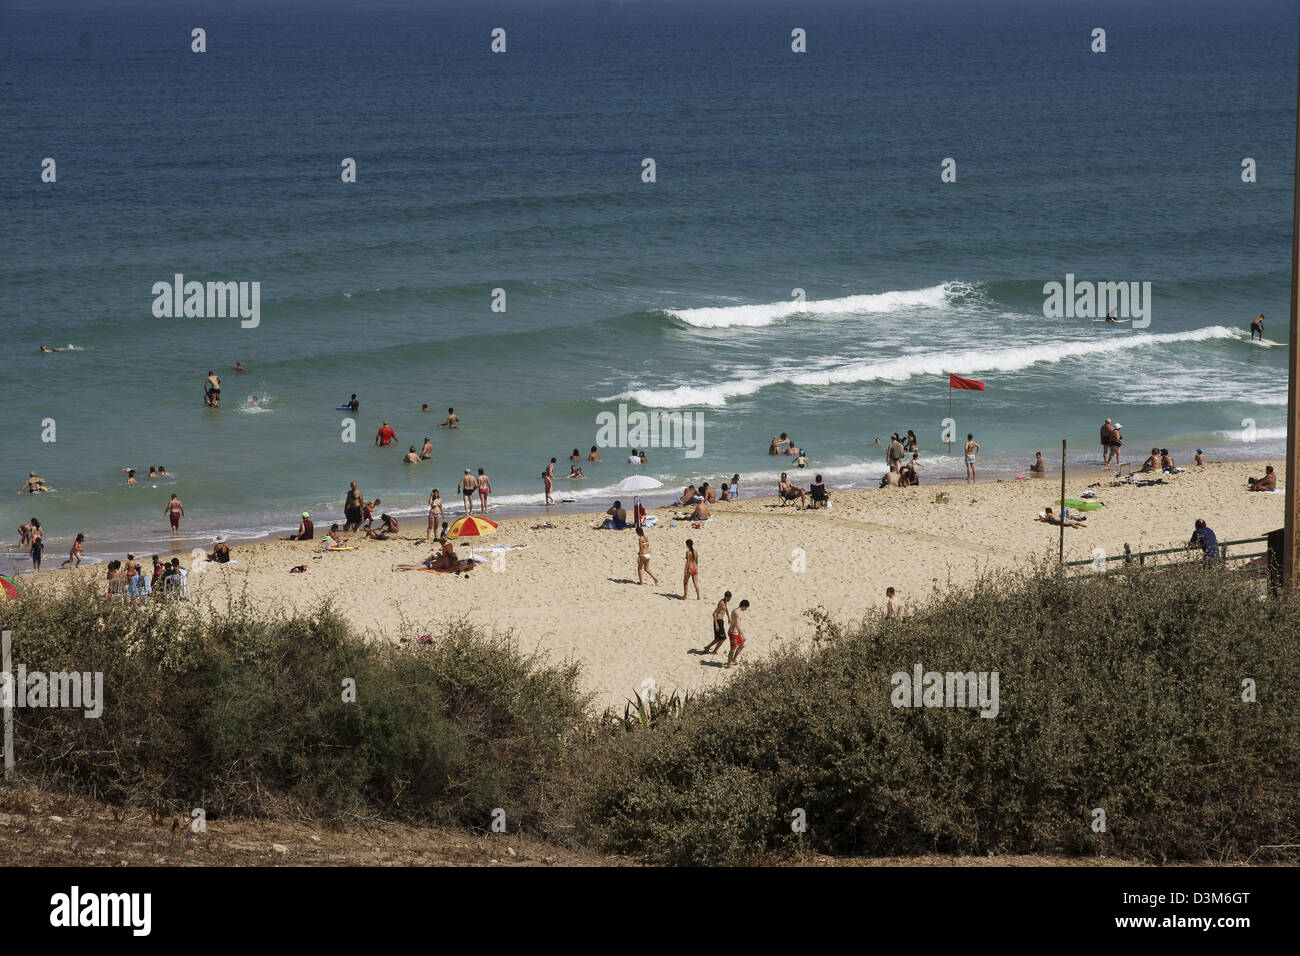 Askelon beach as seen from the National Park - Stock Image